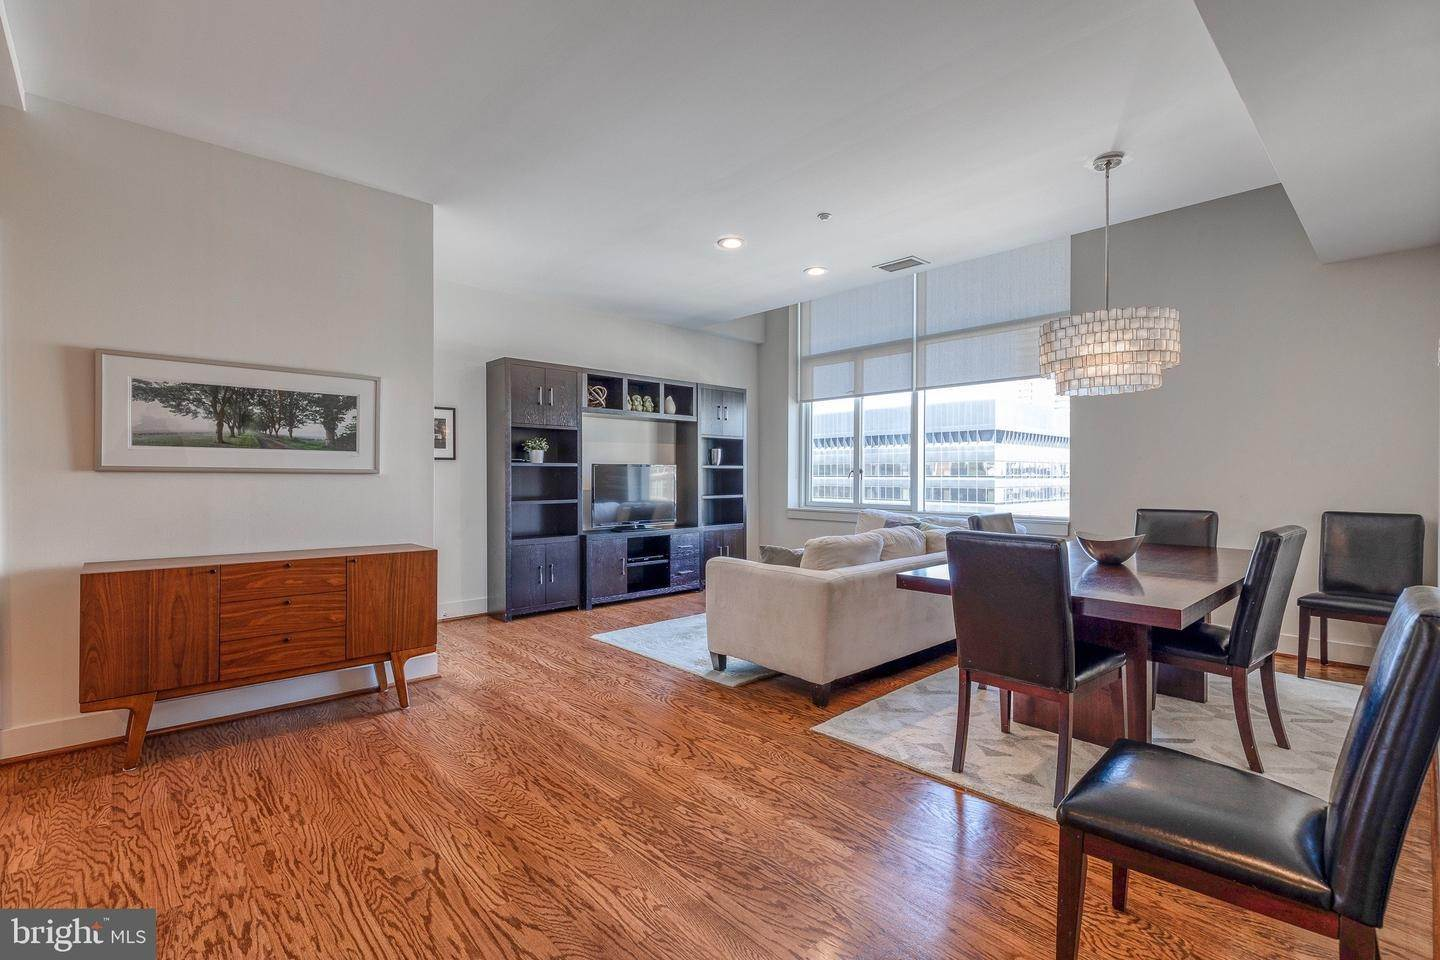 5. Apartments for Sale at 23 S 23RD ST #5B Philadelphia, Pennsylvania 19103 United States